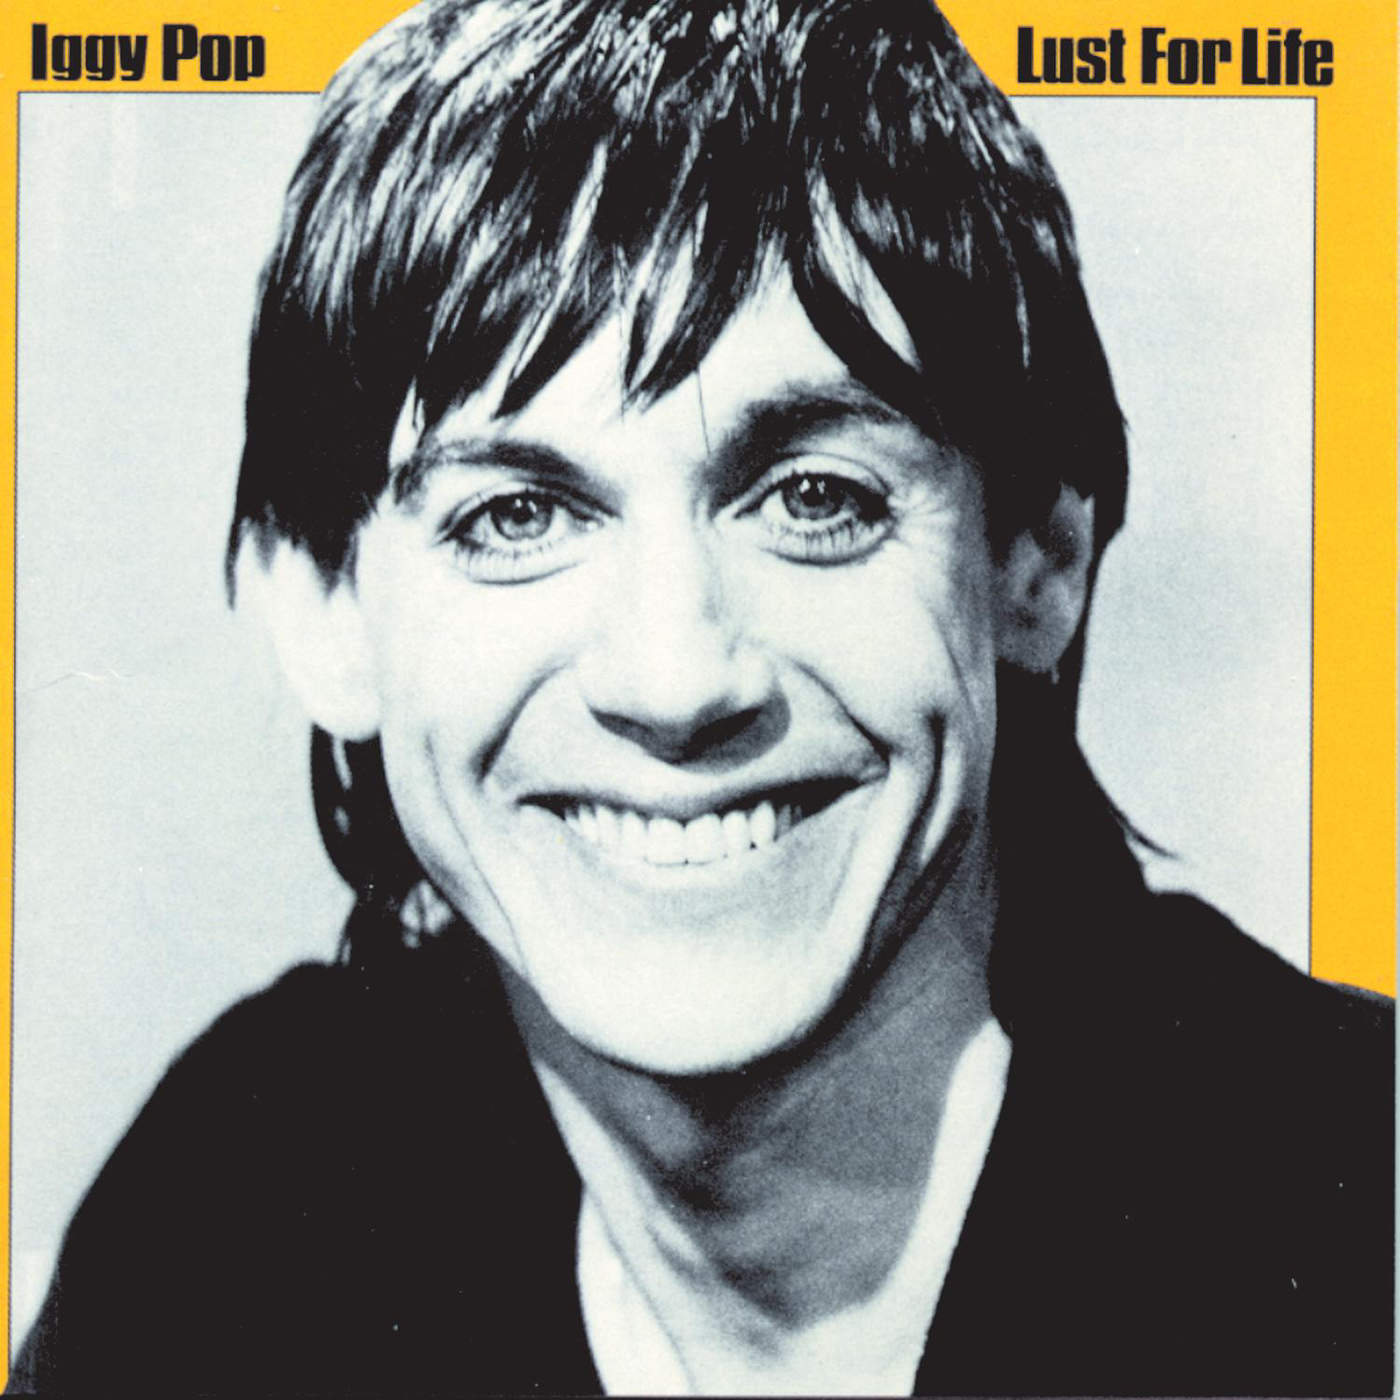 The Passenger - Iggy Pop